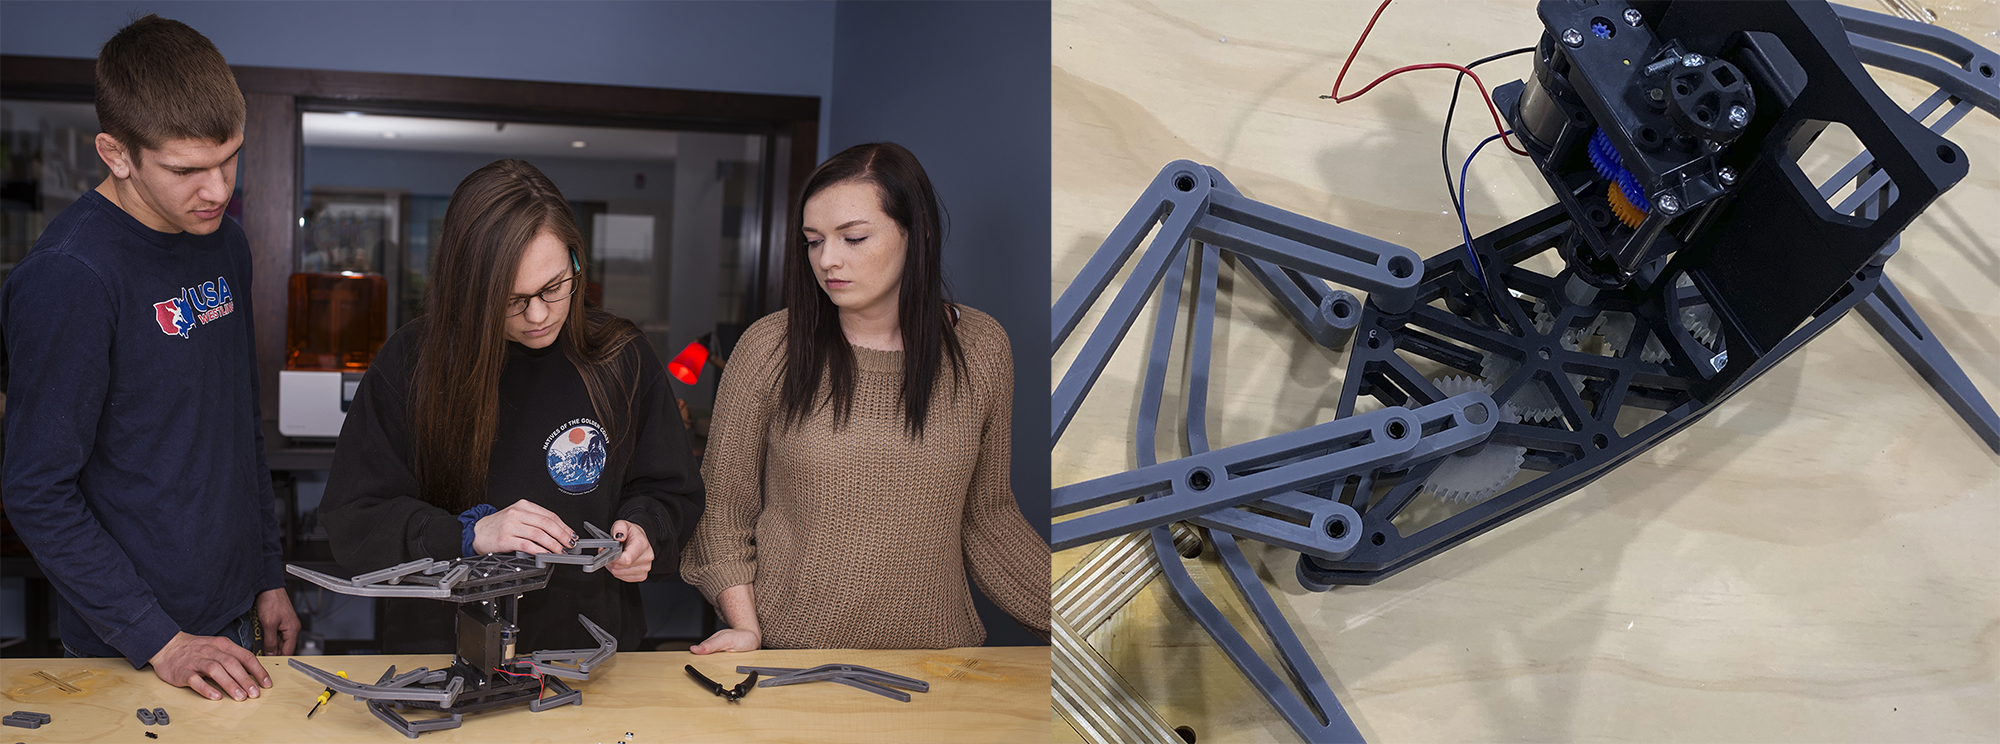 Engineering students work together to assemble a walking robot, made of mechanical elements and 3D printed parts.